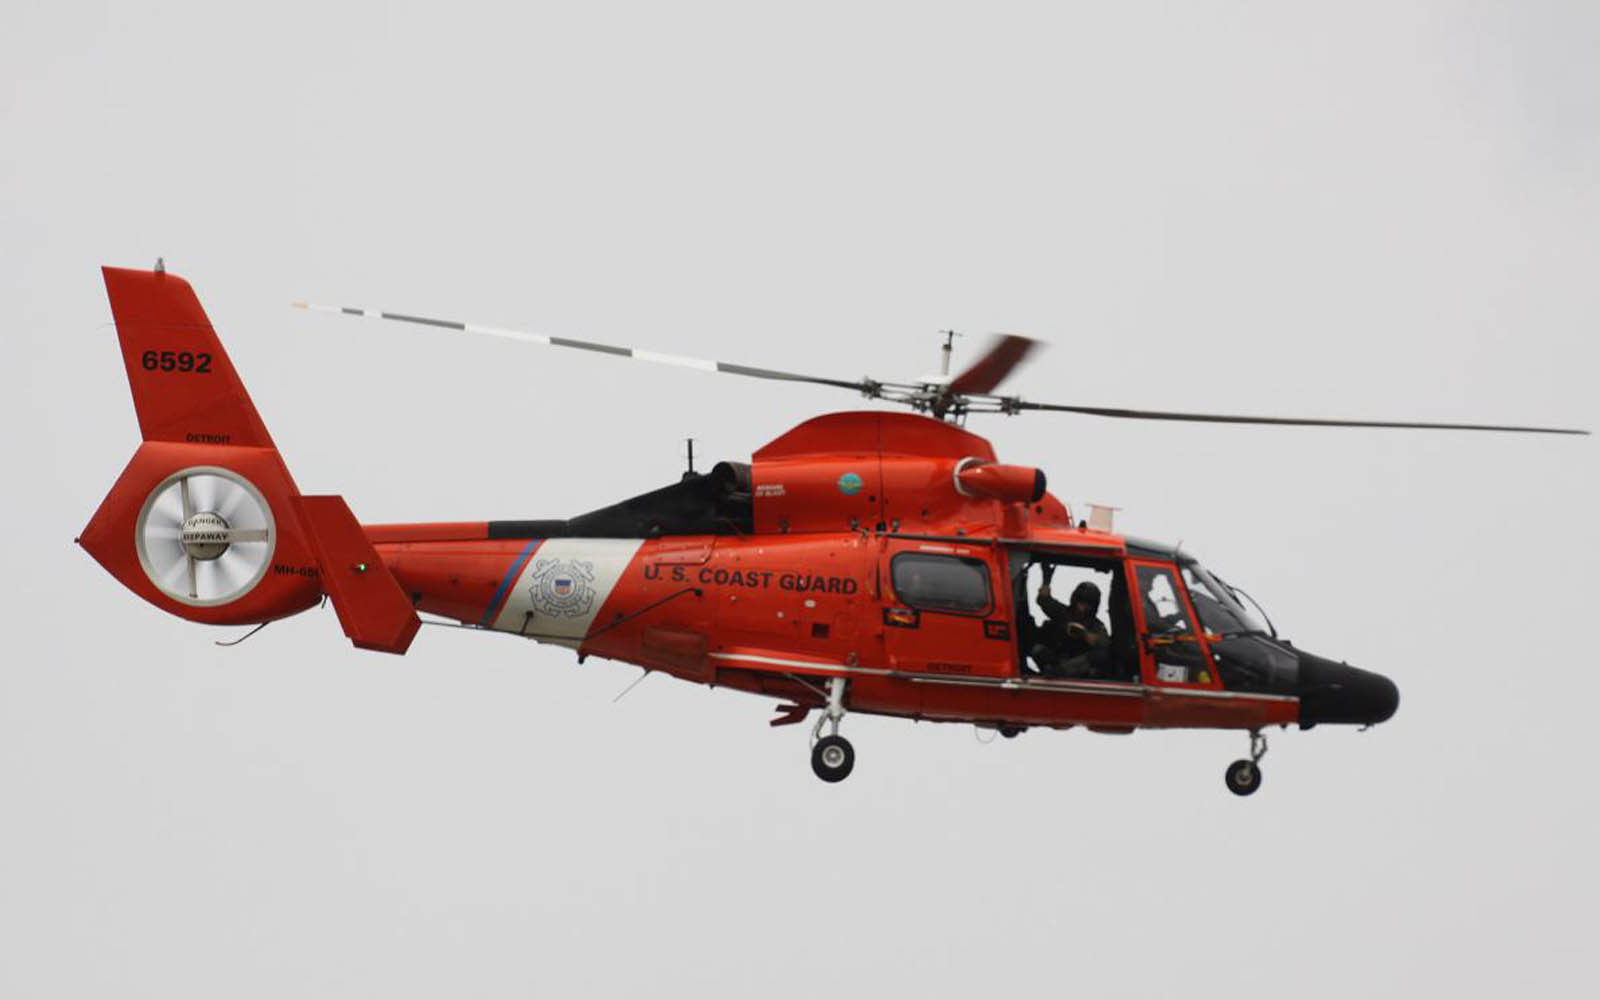 Hh 65 Dolphin Us Coast Guard Helicopter besides Maserati Logo Wallpaper together with Maserati Gransport Spyder 2006 also Article as well Collectionydwn Yolk Sac Mouse. on yd pictures cars